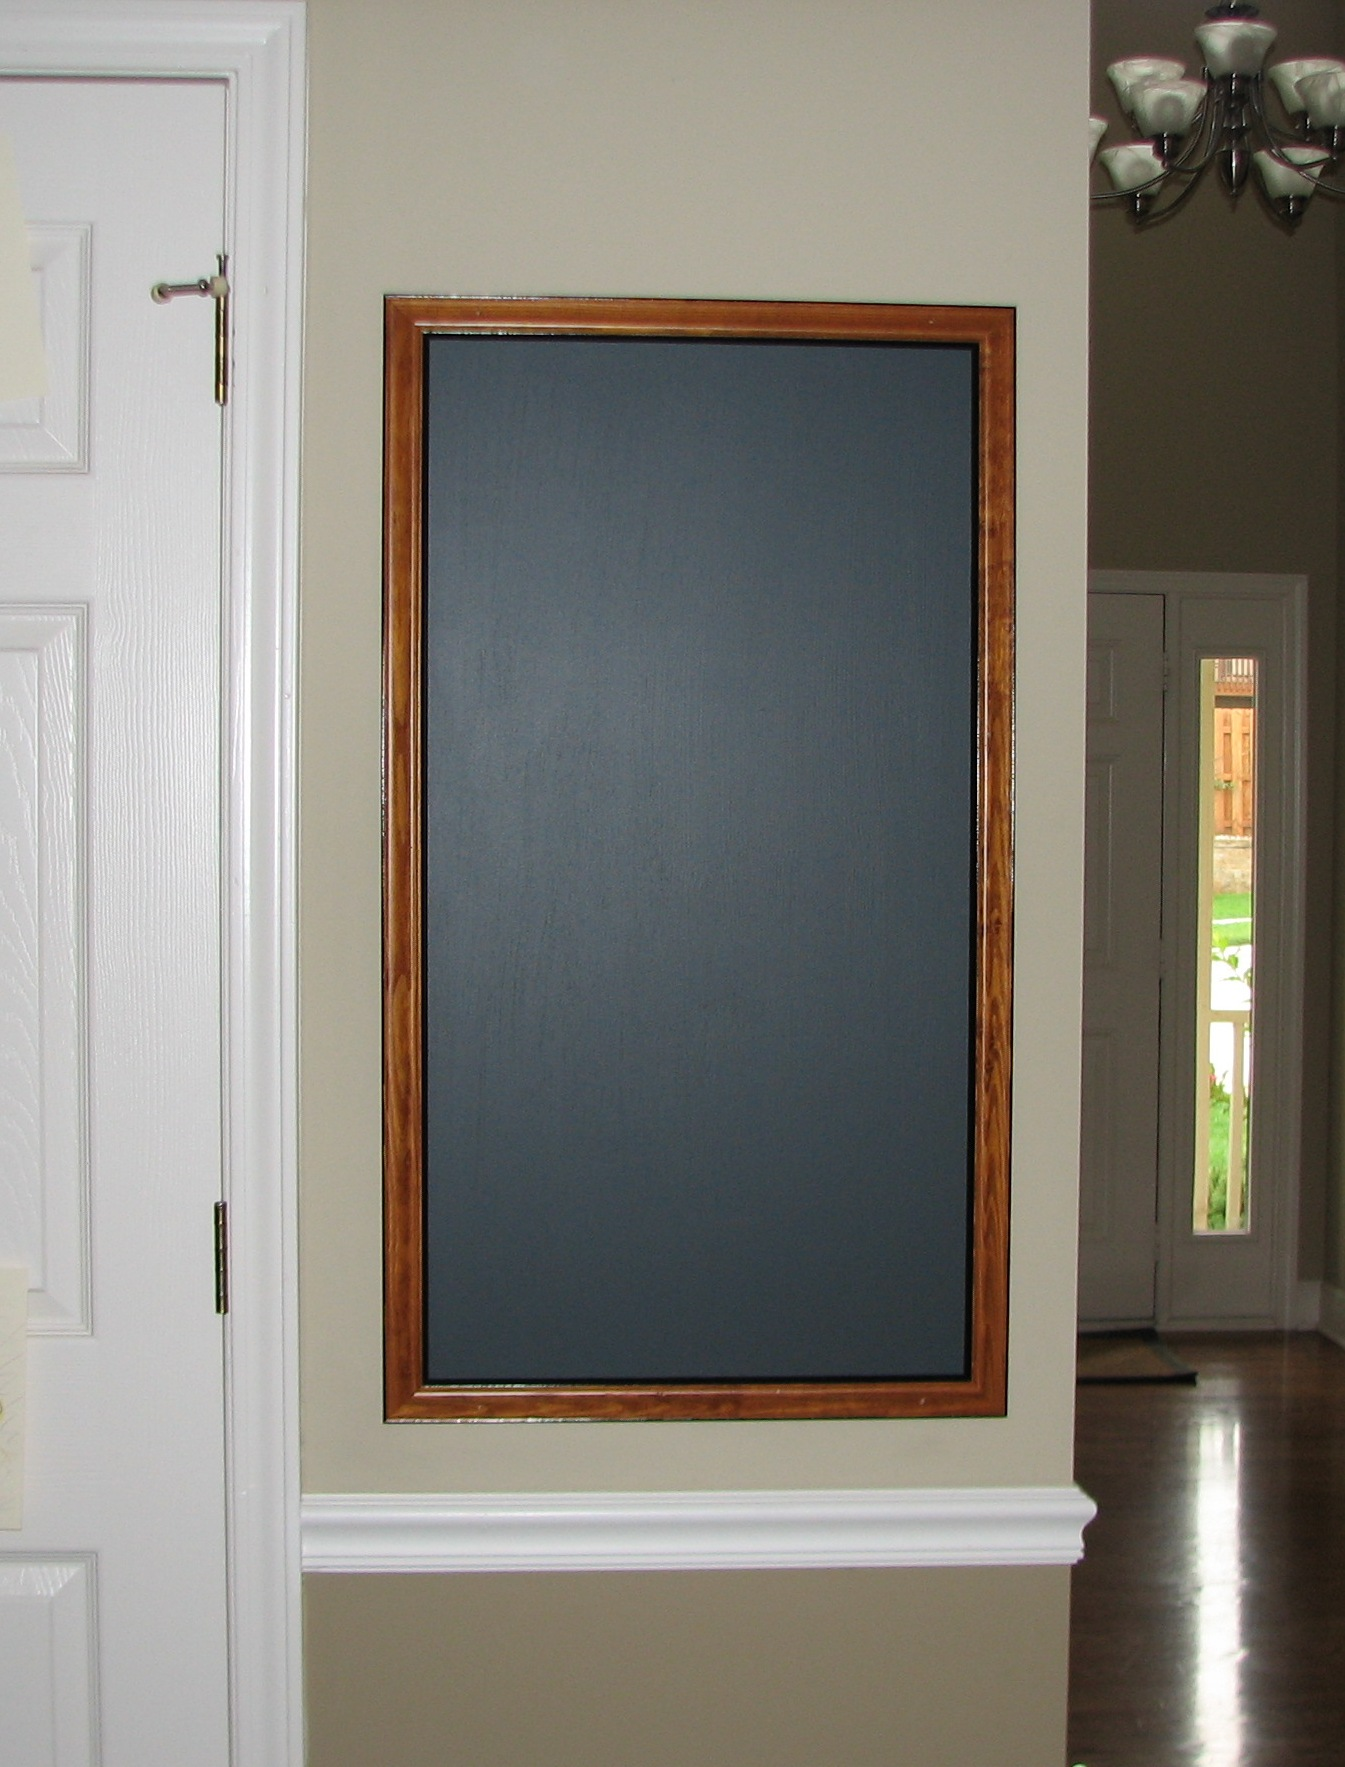 Chalkboard Bulletin Board Cork Keyhook Kitchen Cabinet Designs Notice Boards Design Chalkboard